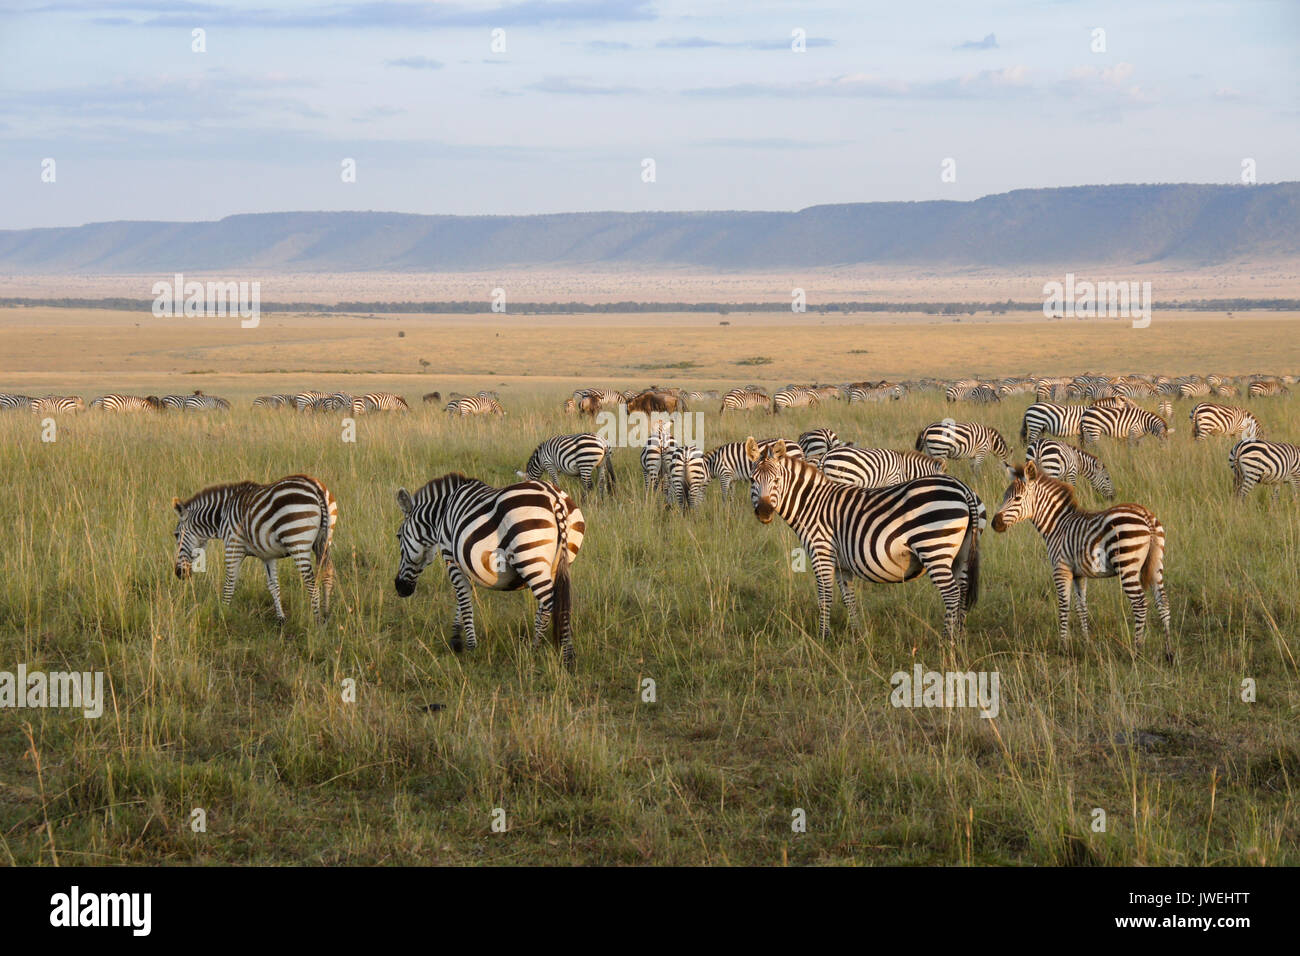 Burchell's (common or plains) zebra grazing on plain (Oloololo/Oldoinylo/Siria Escarpment in background), Masai Mara Game Reserve, Kenya - Stock Image